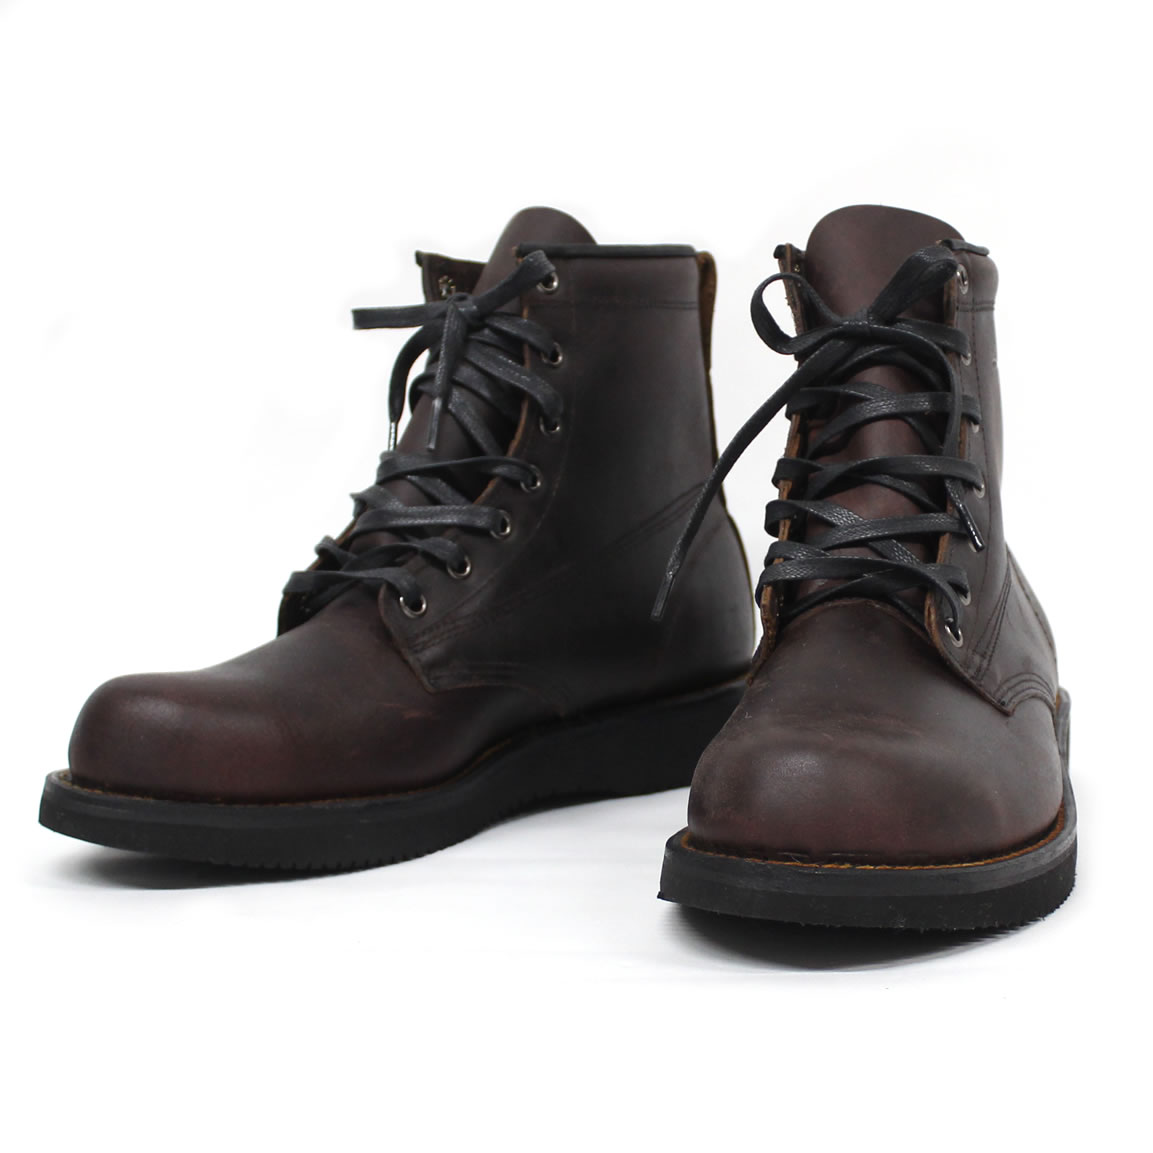 BROKEN HOMME ブロークンオム / レザーブーツ ワークブーツ / JAMES BOOT - OXBLOOD / MADE IN USA 【t79】